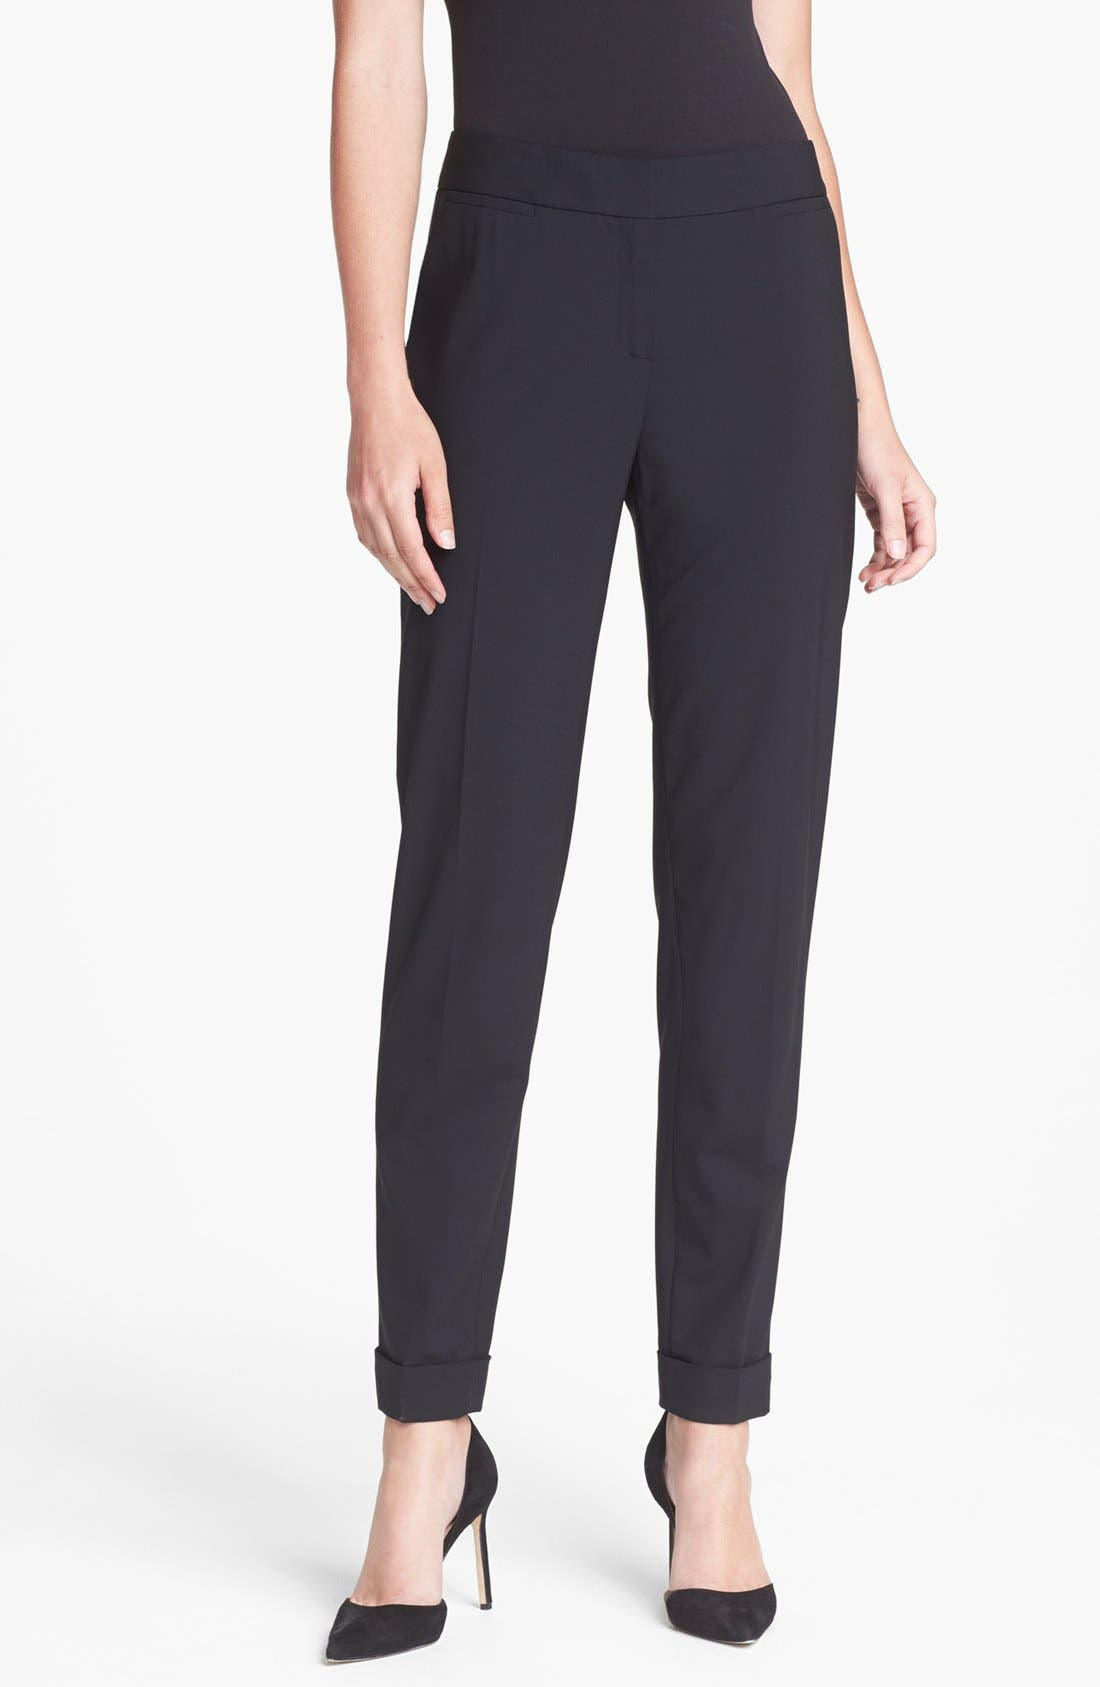 Alternate Image 1 Selected - Lafayette 148 New York Cuffed Slim Pants